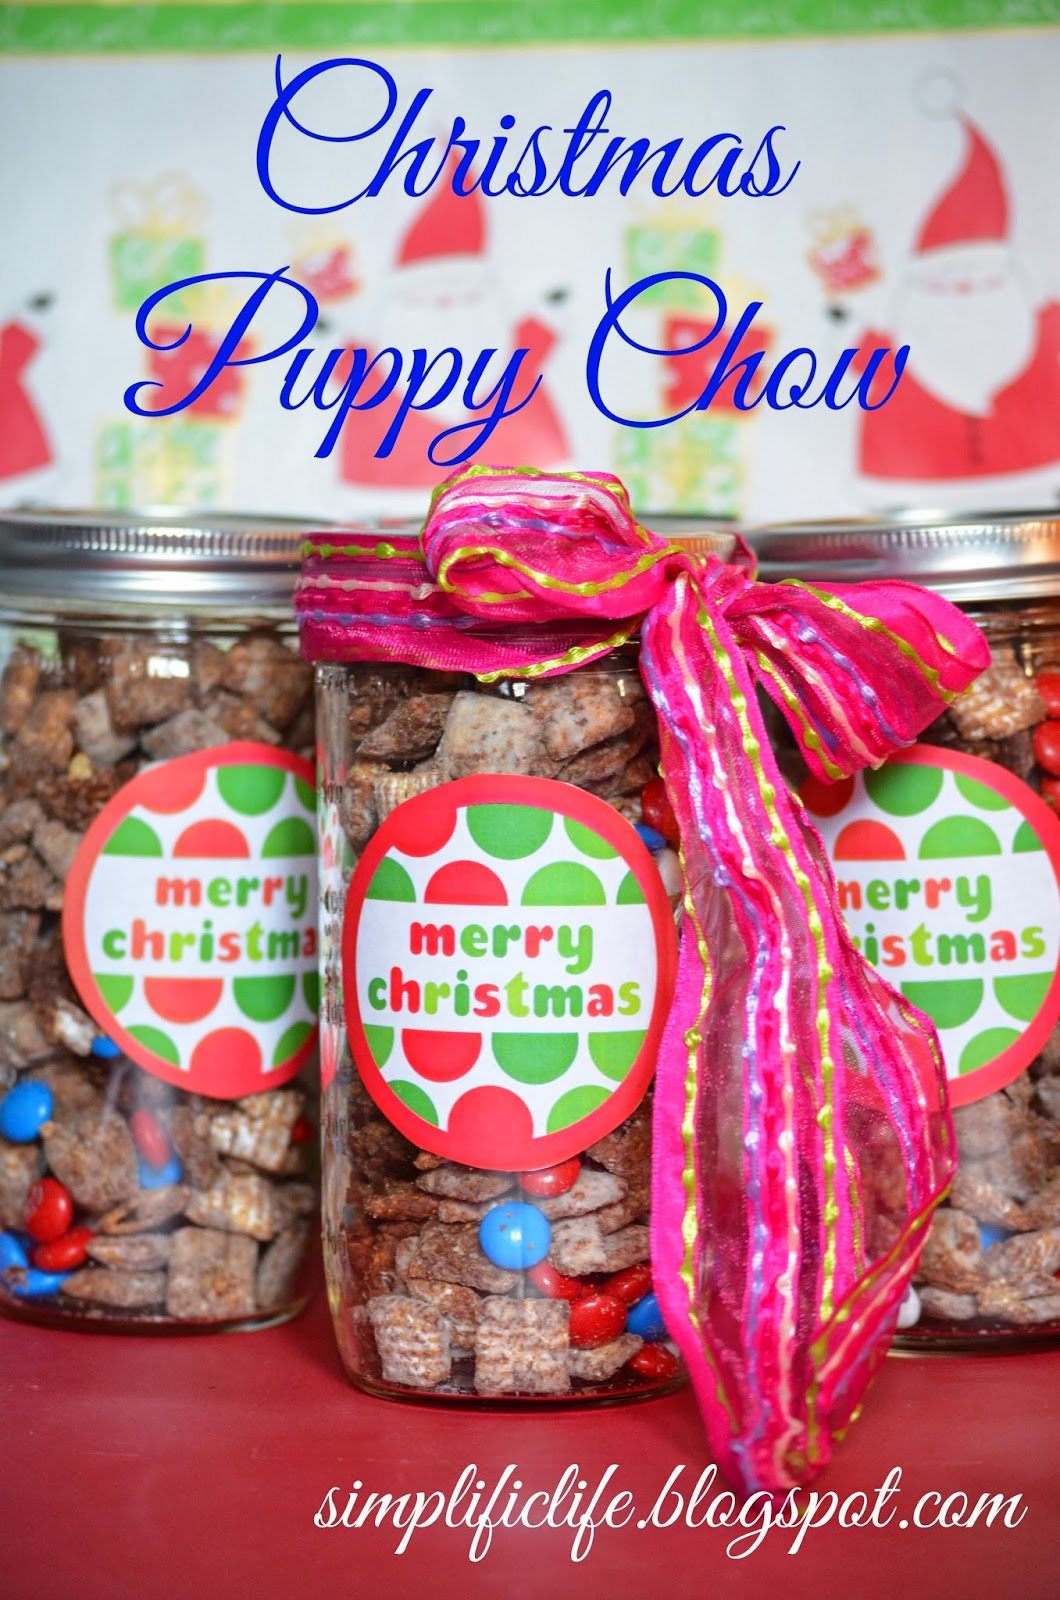 christmas puppy chow - Christmas Puppy Chow